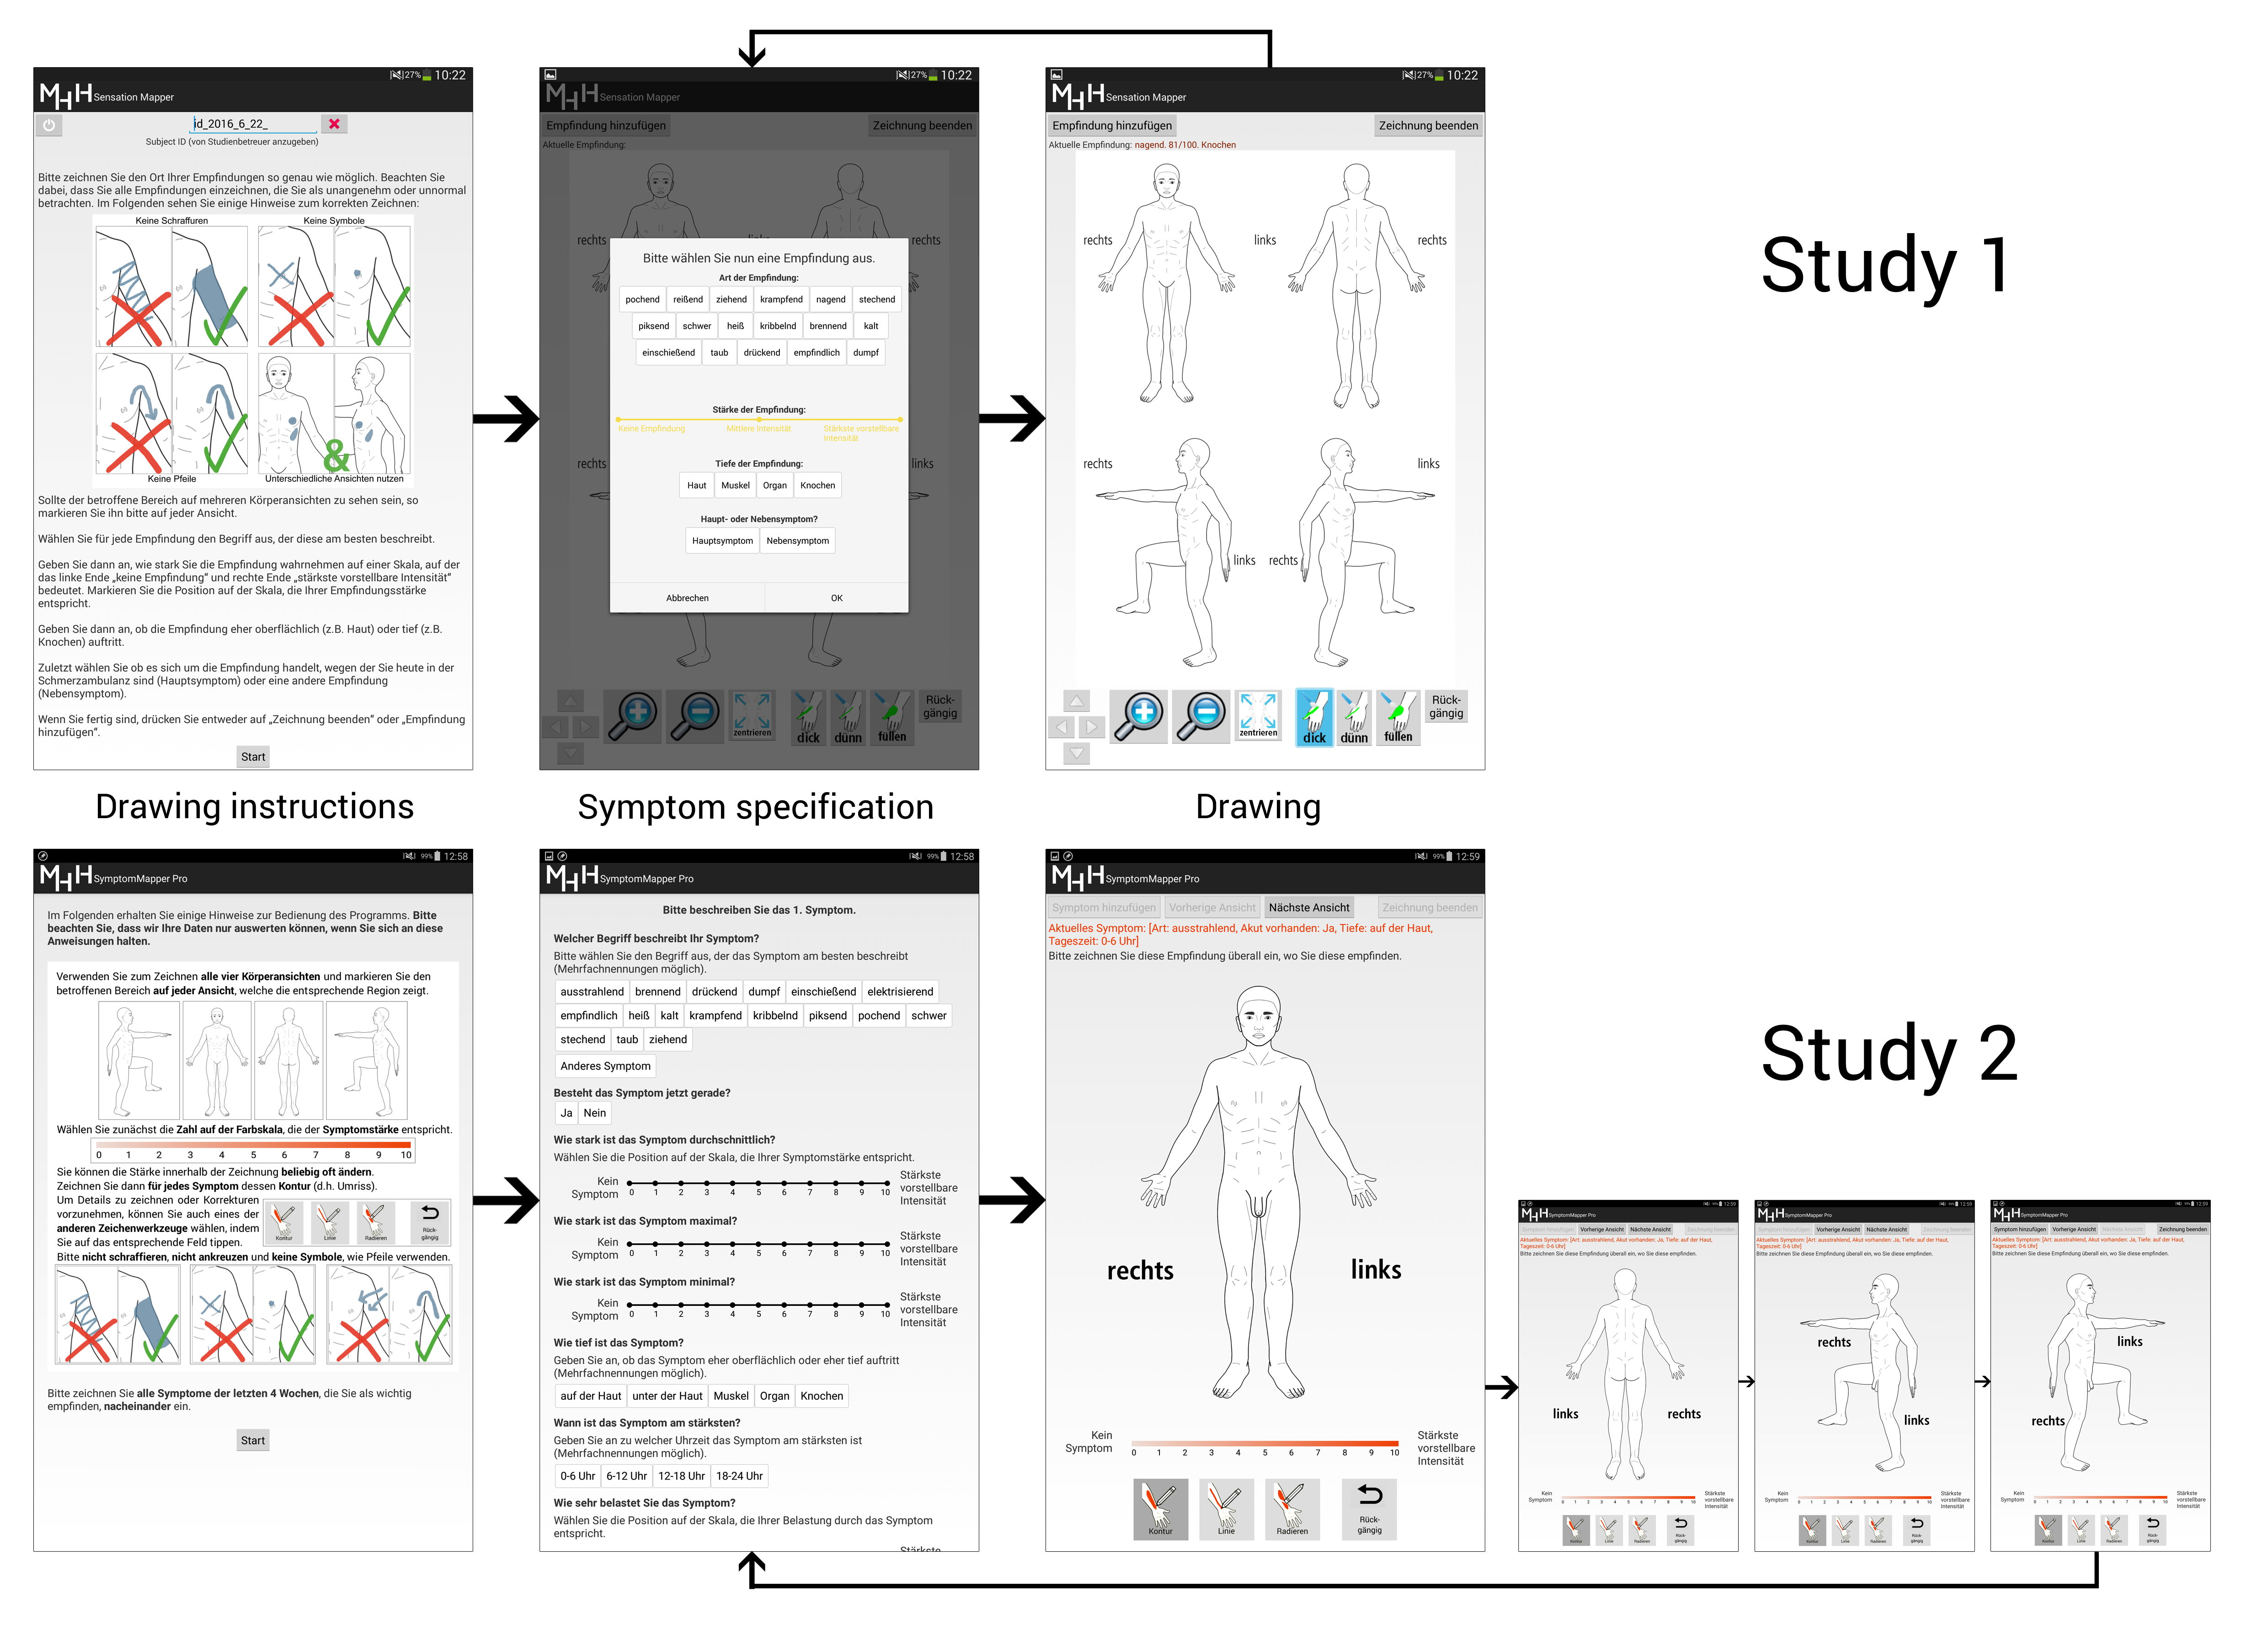 JMU - Designing a Tablet-Based Software App for Mapping Bodily